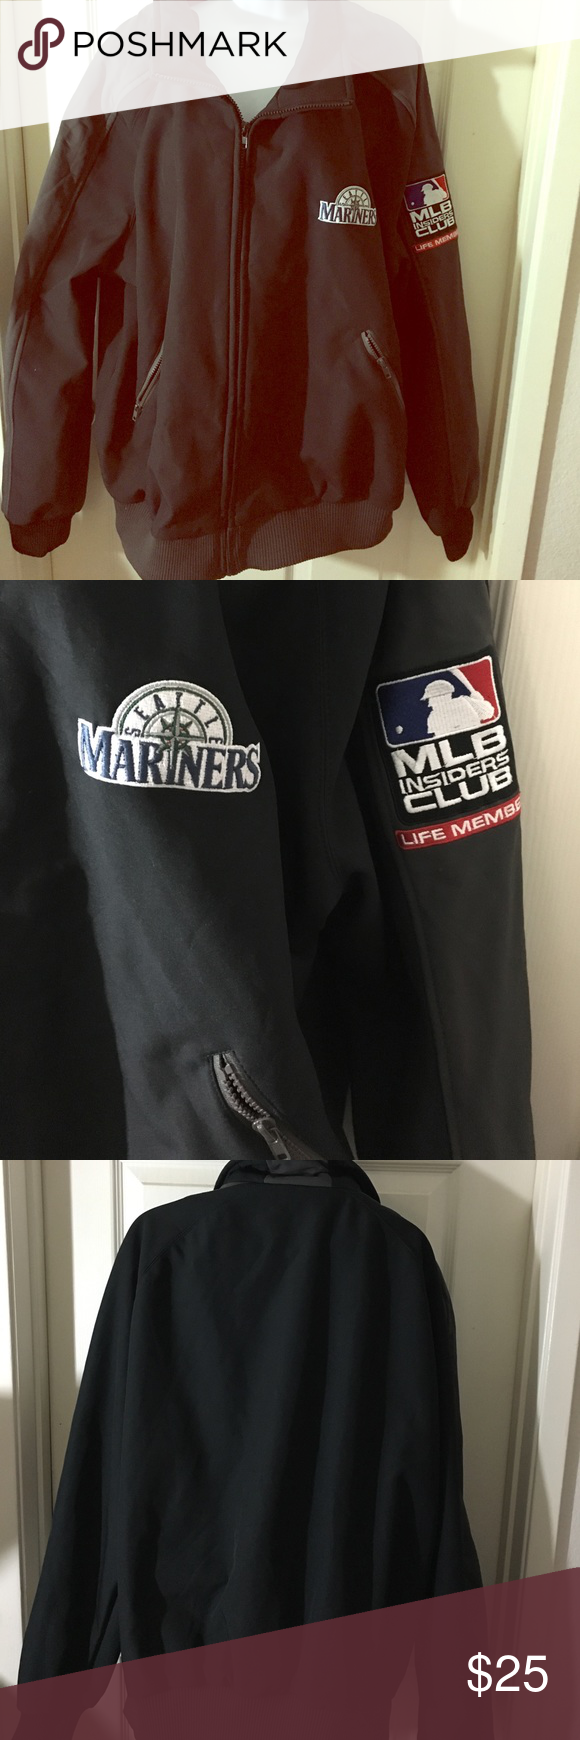 XXXL Mariner Jacket Seattle Mariner Jacket New XXXL MLB Jackets & Coats Bomber & Varsity